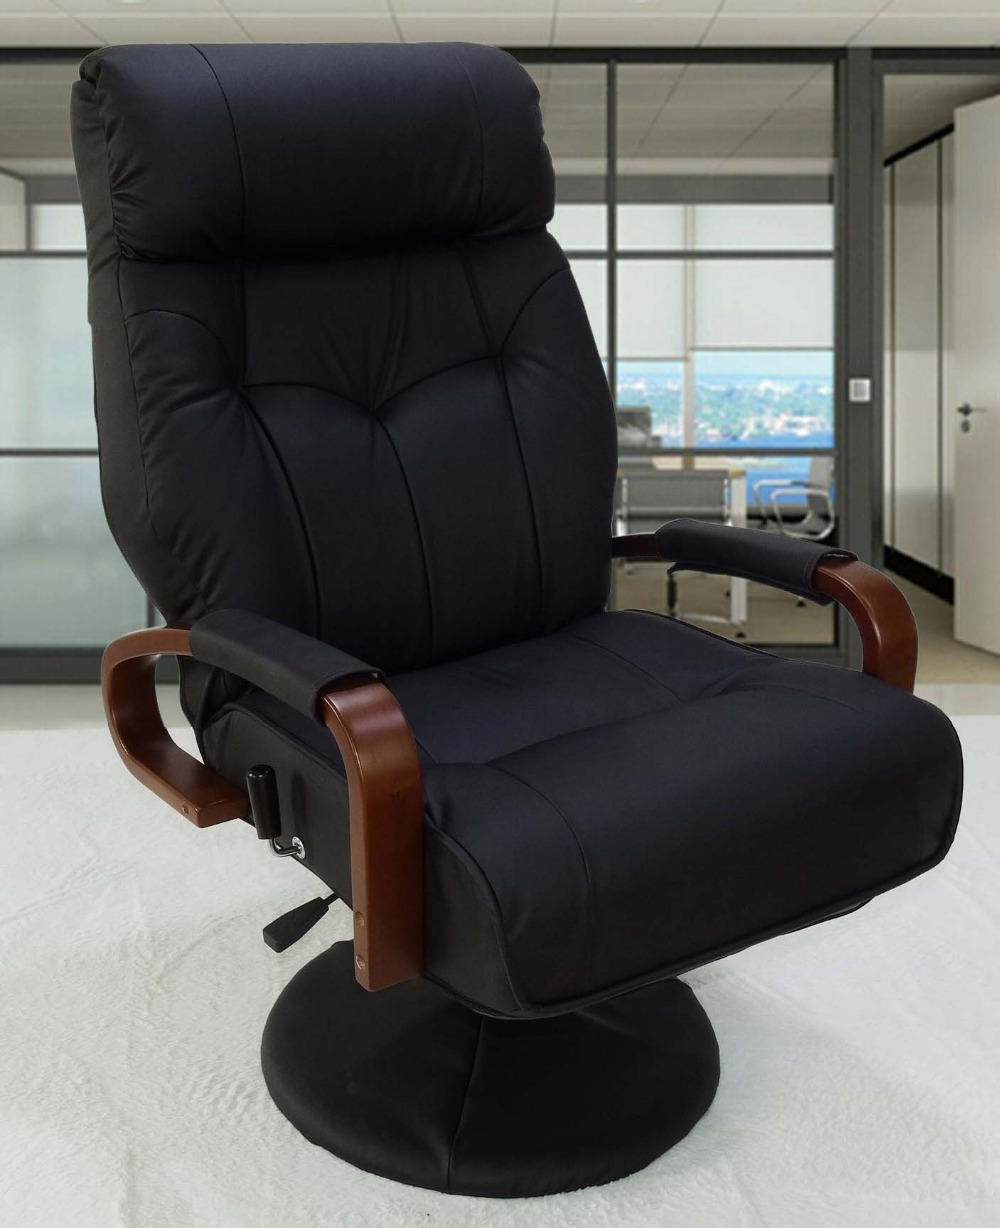 Popular Swivel Living Room ChairBuy Cheap Swivel Living Room - Swivel living room chair living room style